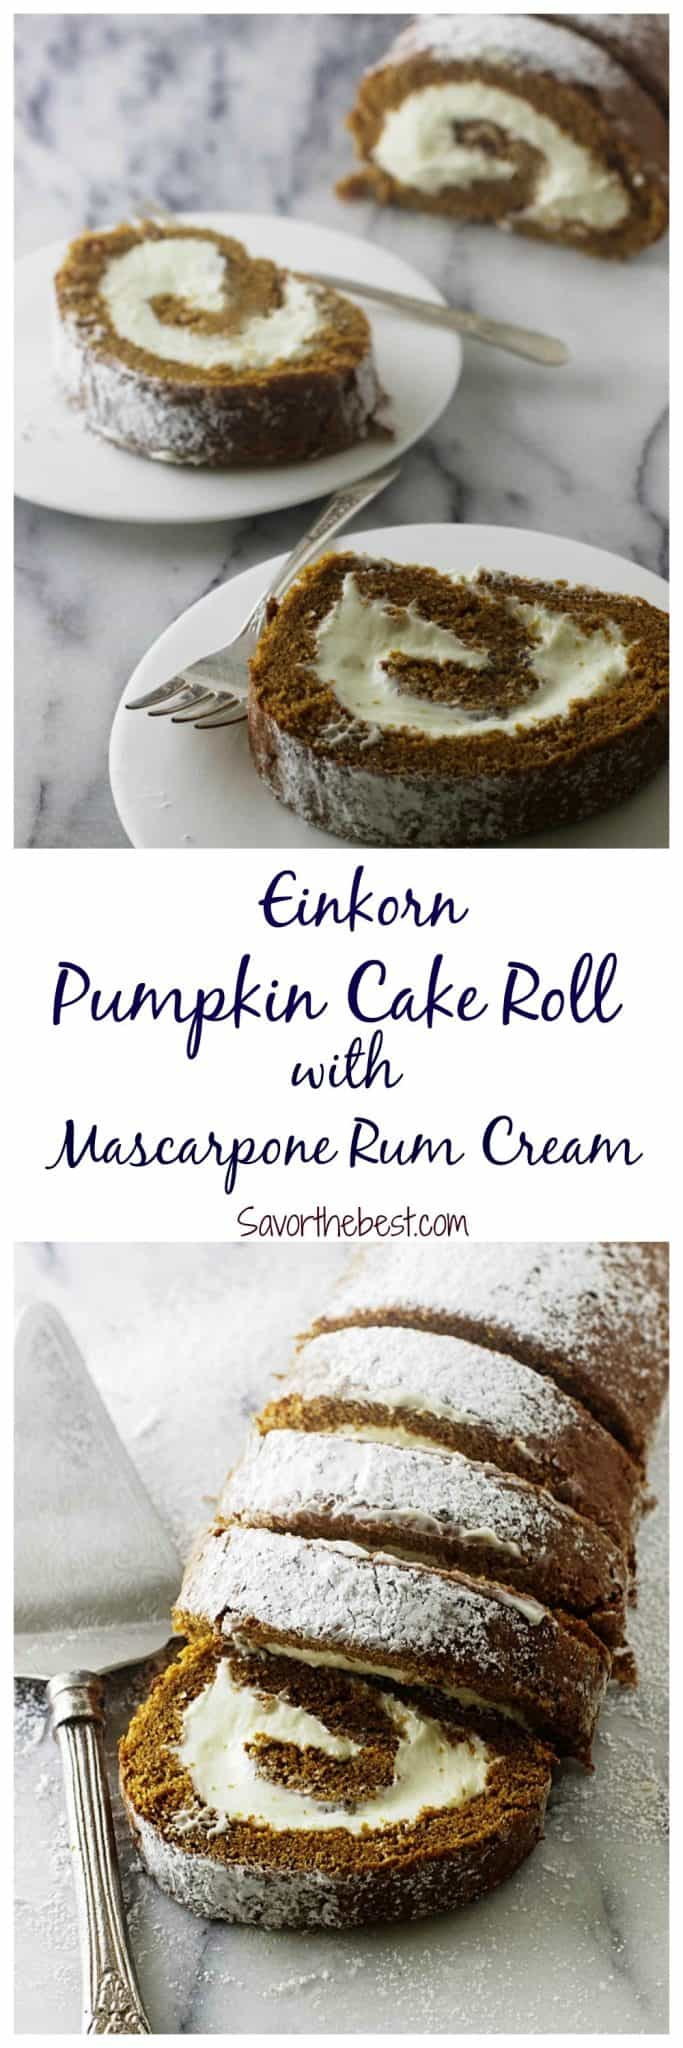 pumpkin cake roll with mascarpone rum cream